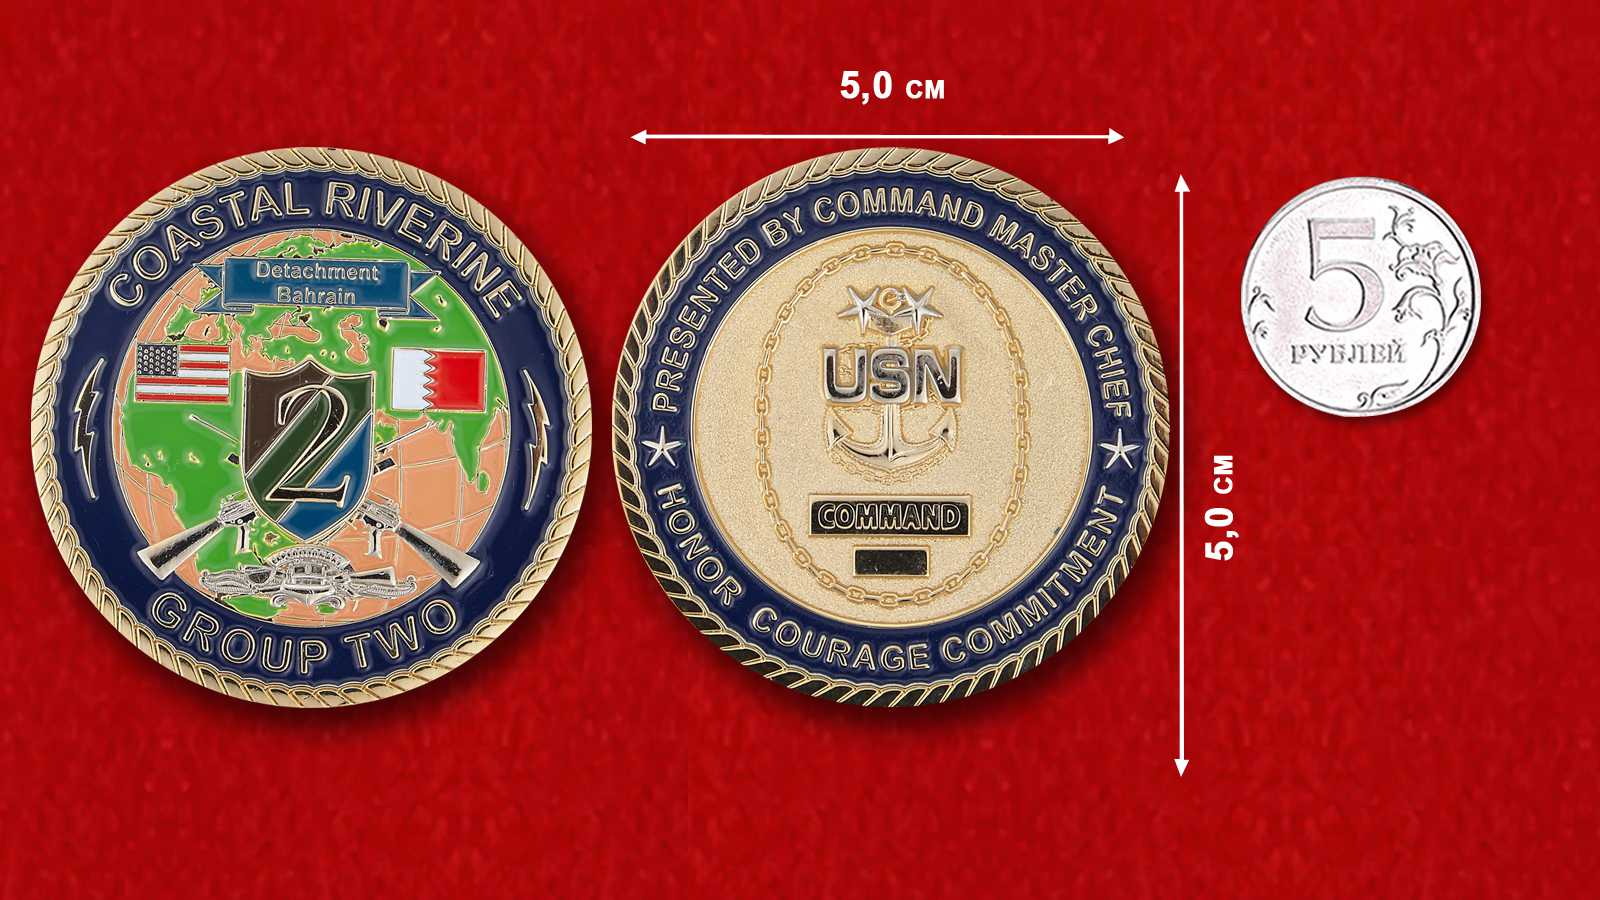 US Navy Detachment Bahrain Coastal Riverine Group 2 By Command Master Chief Challenge Coin